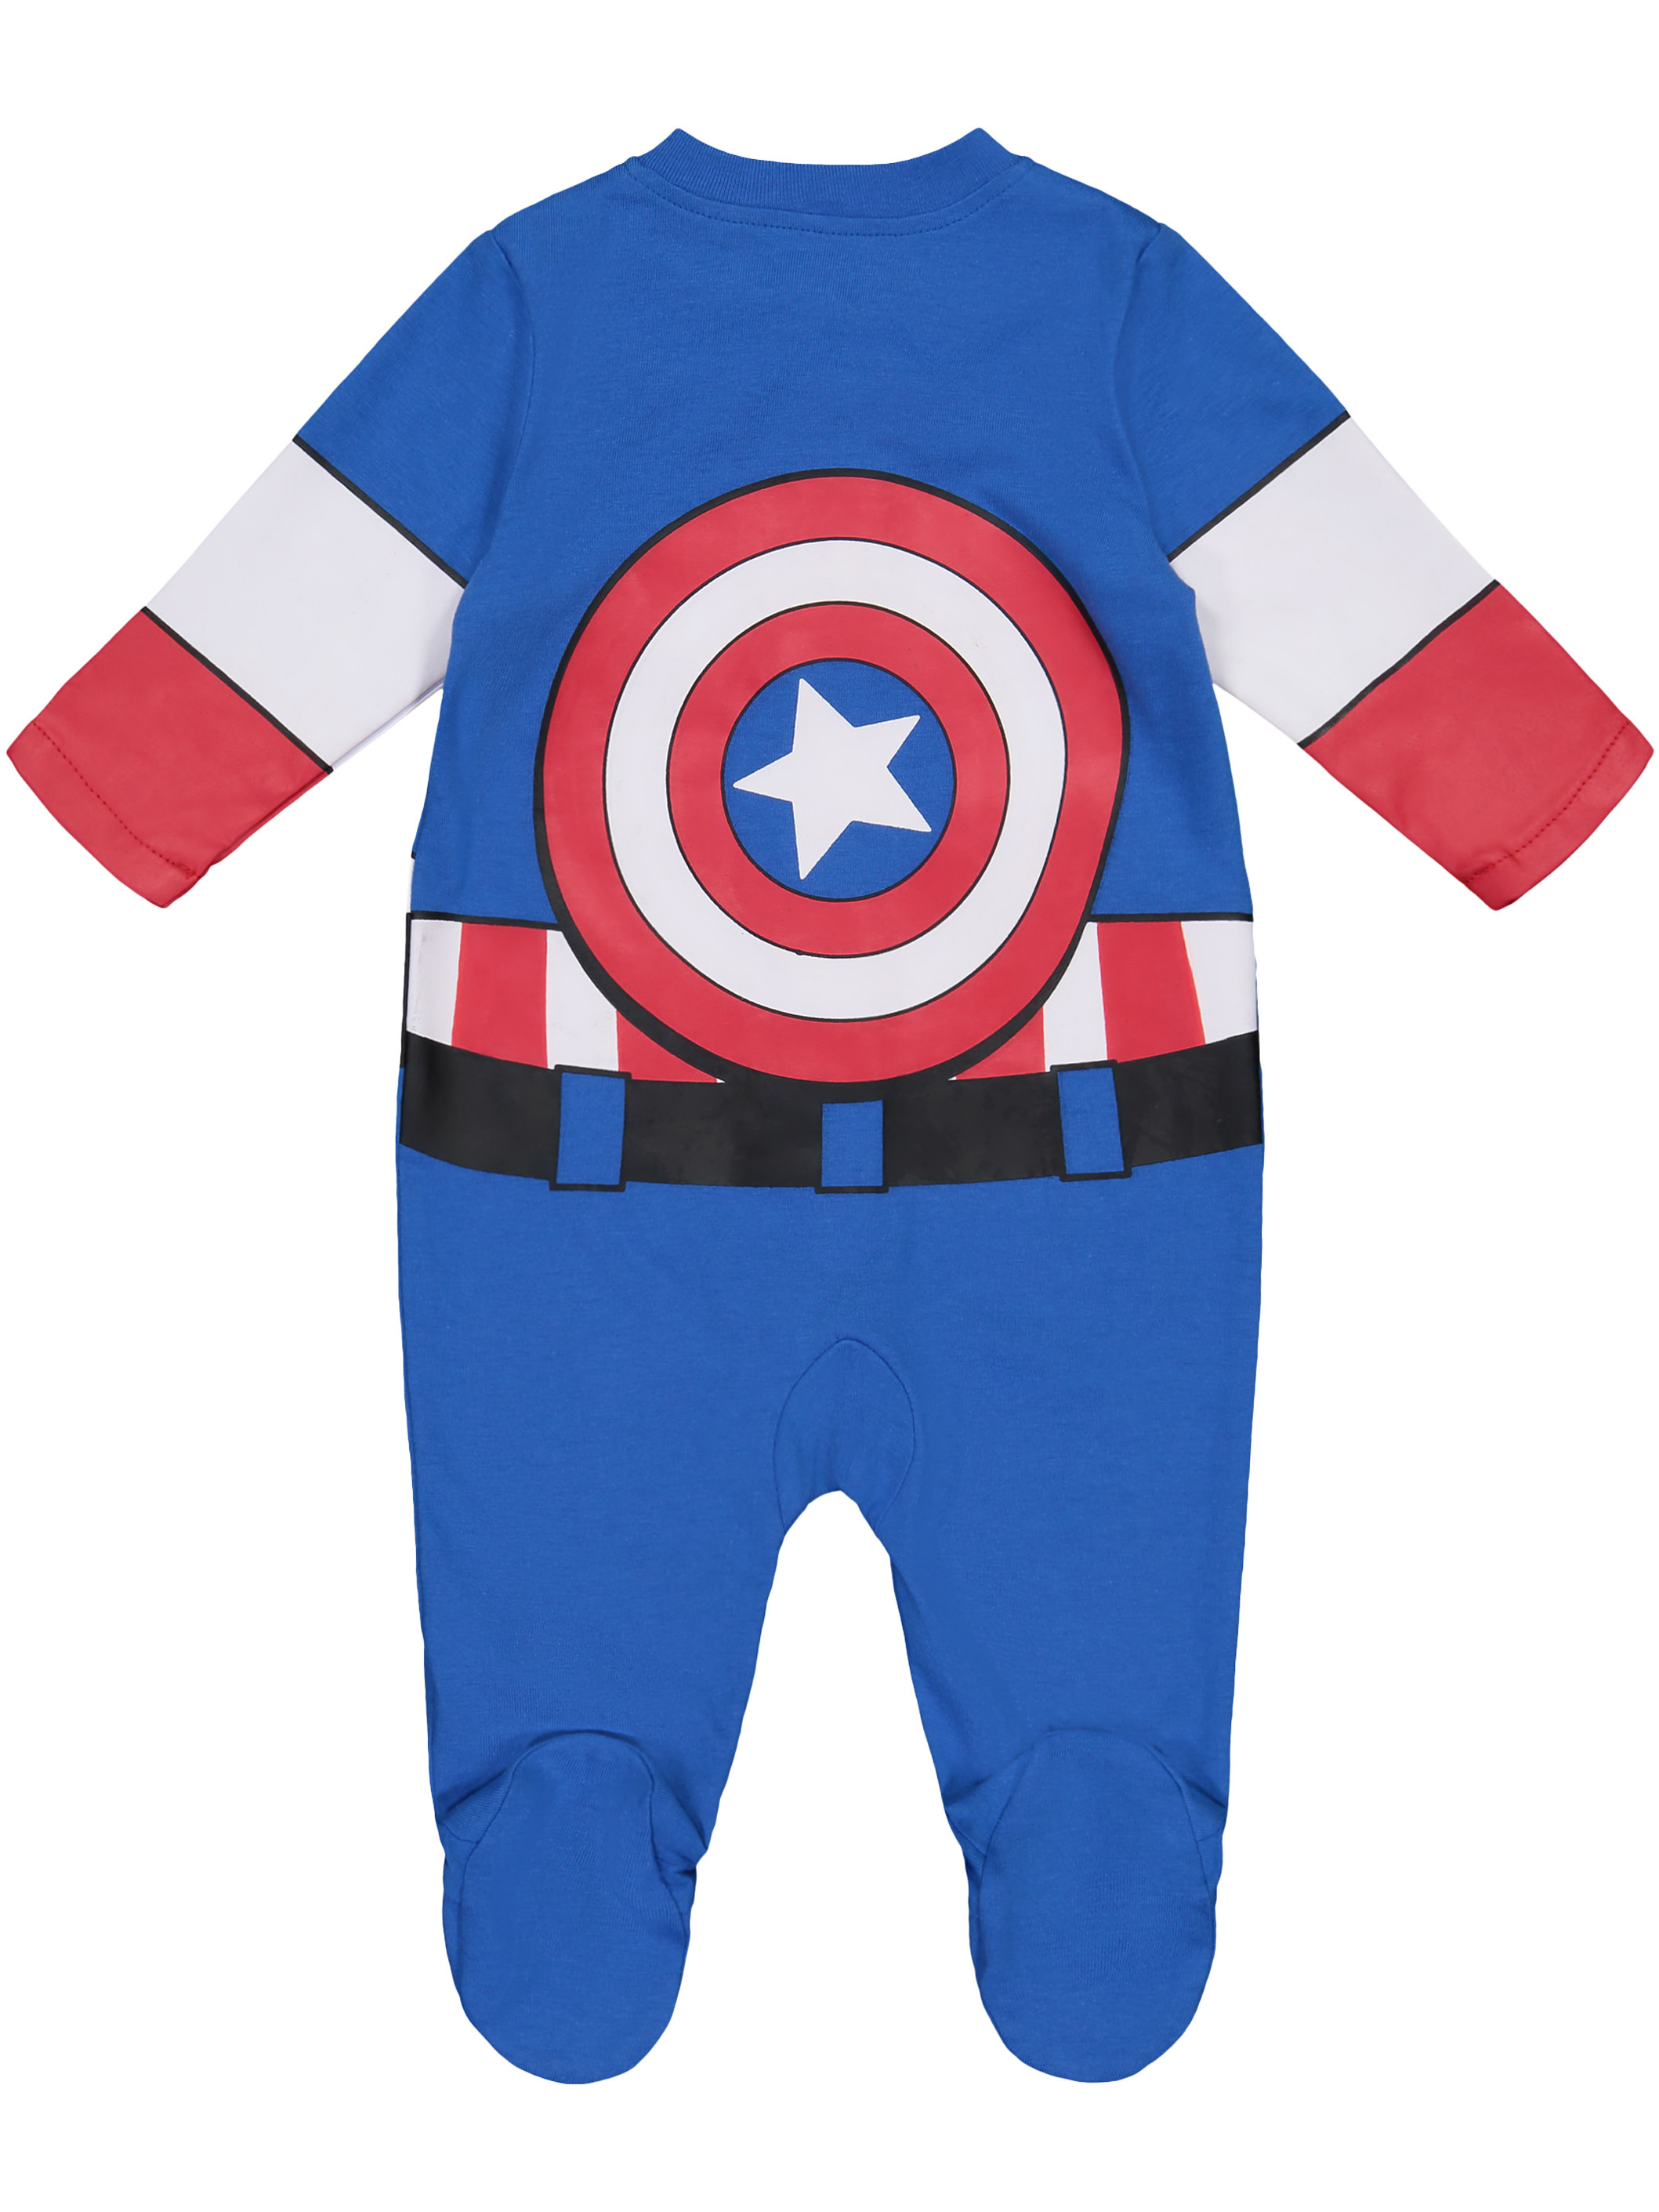 Marvel Avengers Captain America Baby Boys Zip Up Costume Coverall With Footies 6 9 Months Walmart Com Walmart Com Buy captain marvel carol danvers cosplay costumes, we sell captain marvel cosplay costumes all over the world, fastest delivery, 24/7 online service! marvel avengers captain america baby boys zip up costume coverall with footies 6 9 months